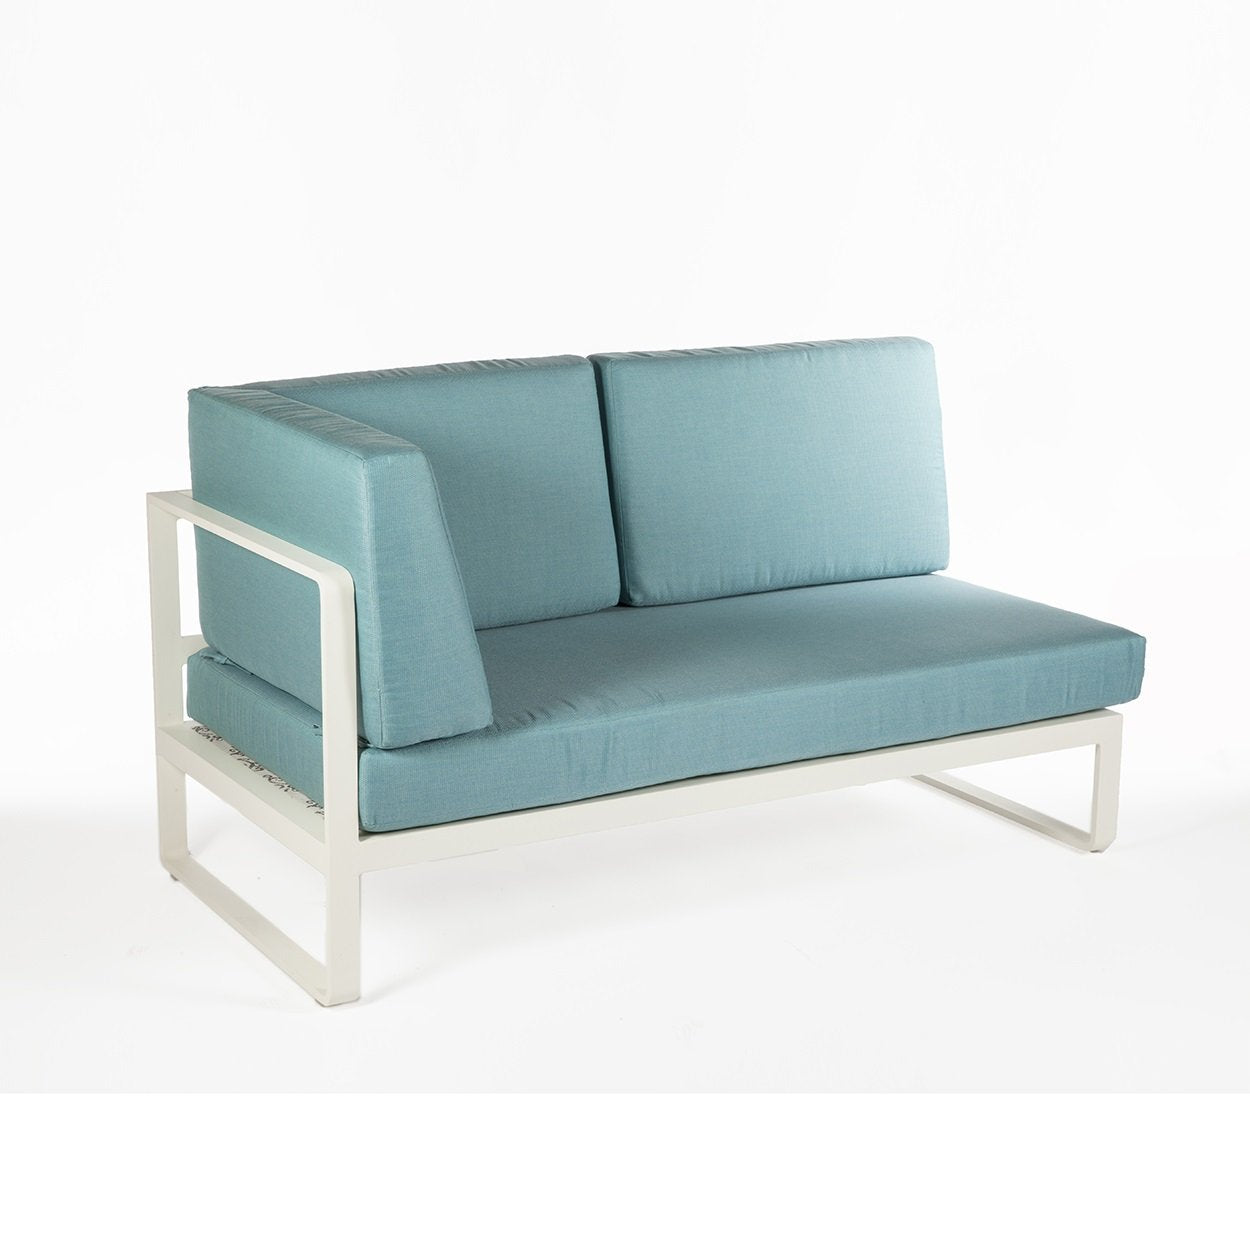 [FCC6986BLUE] The Manhattan Sofa